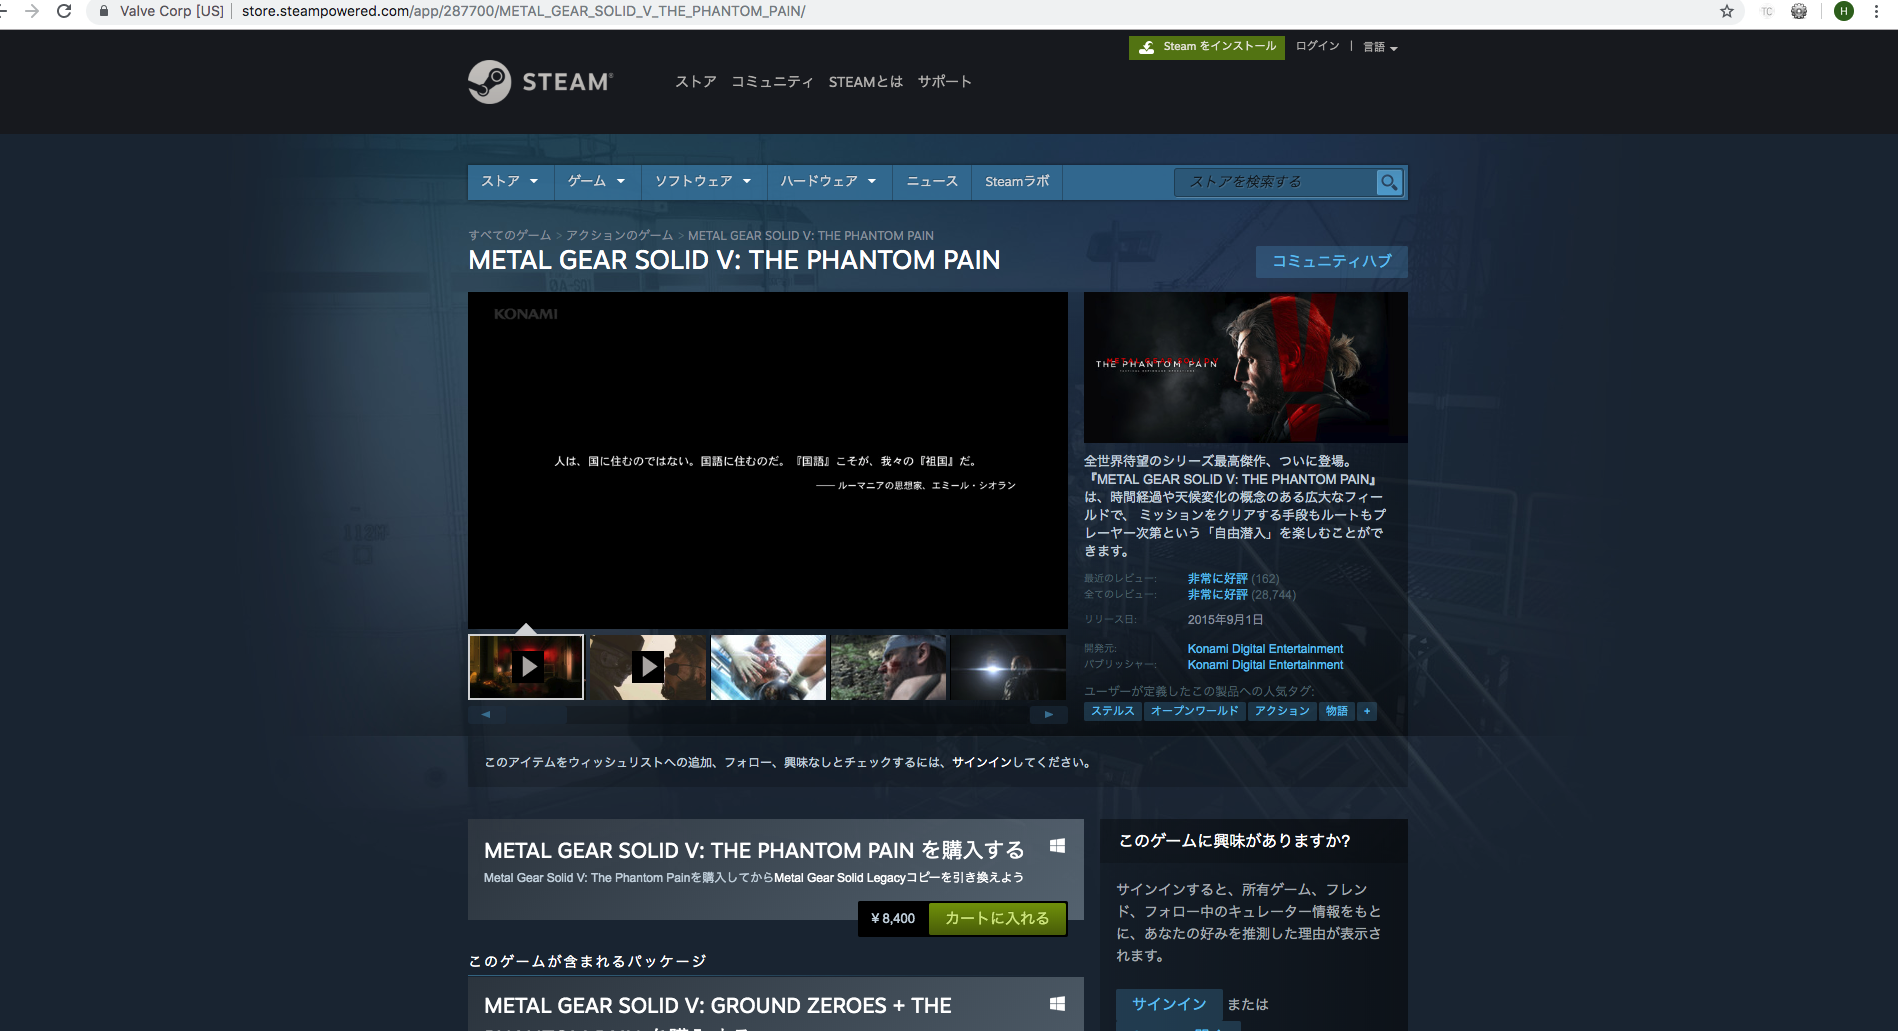 METAL GEAR SOLID Vの画像